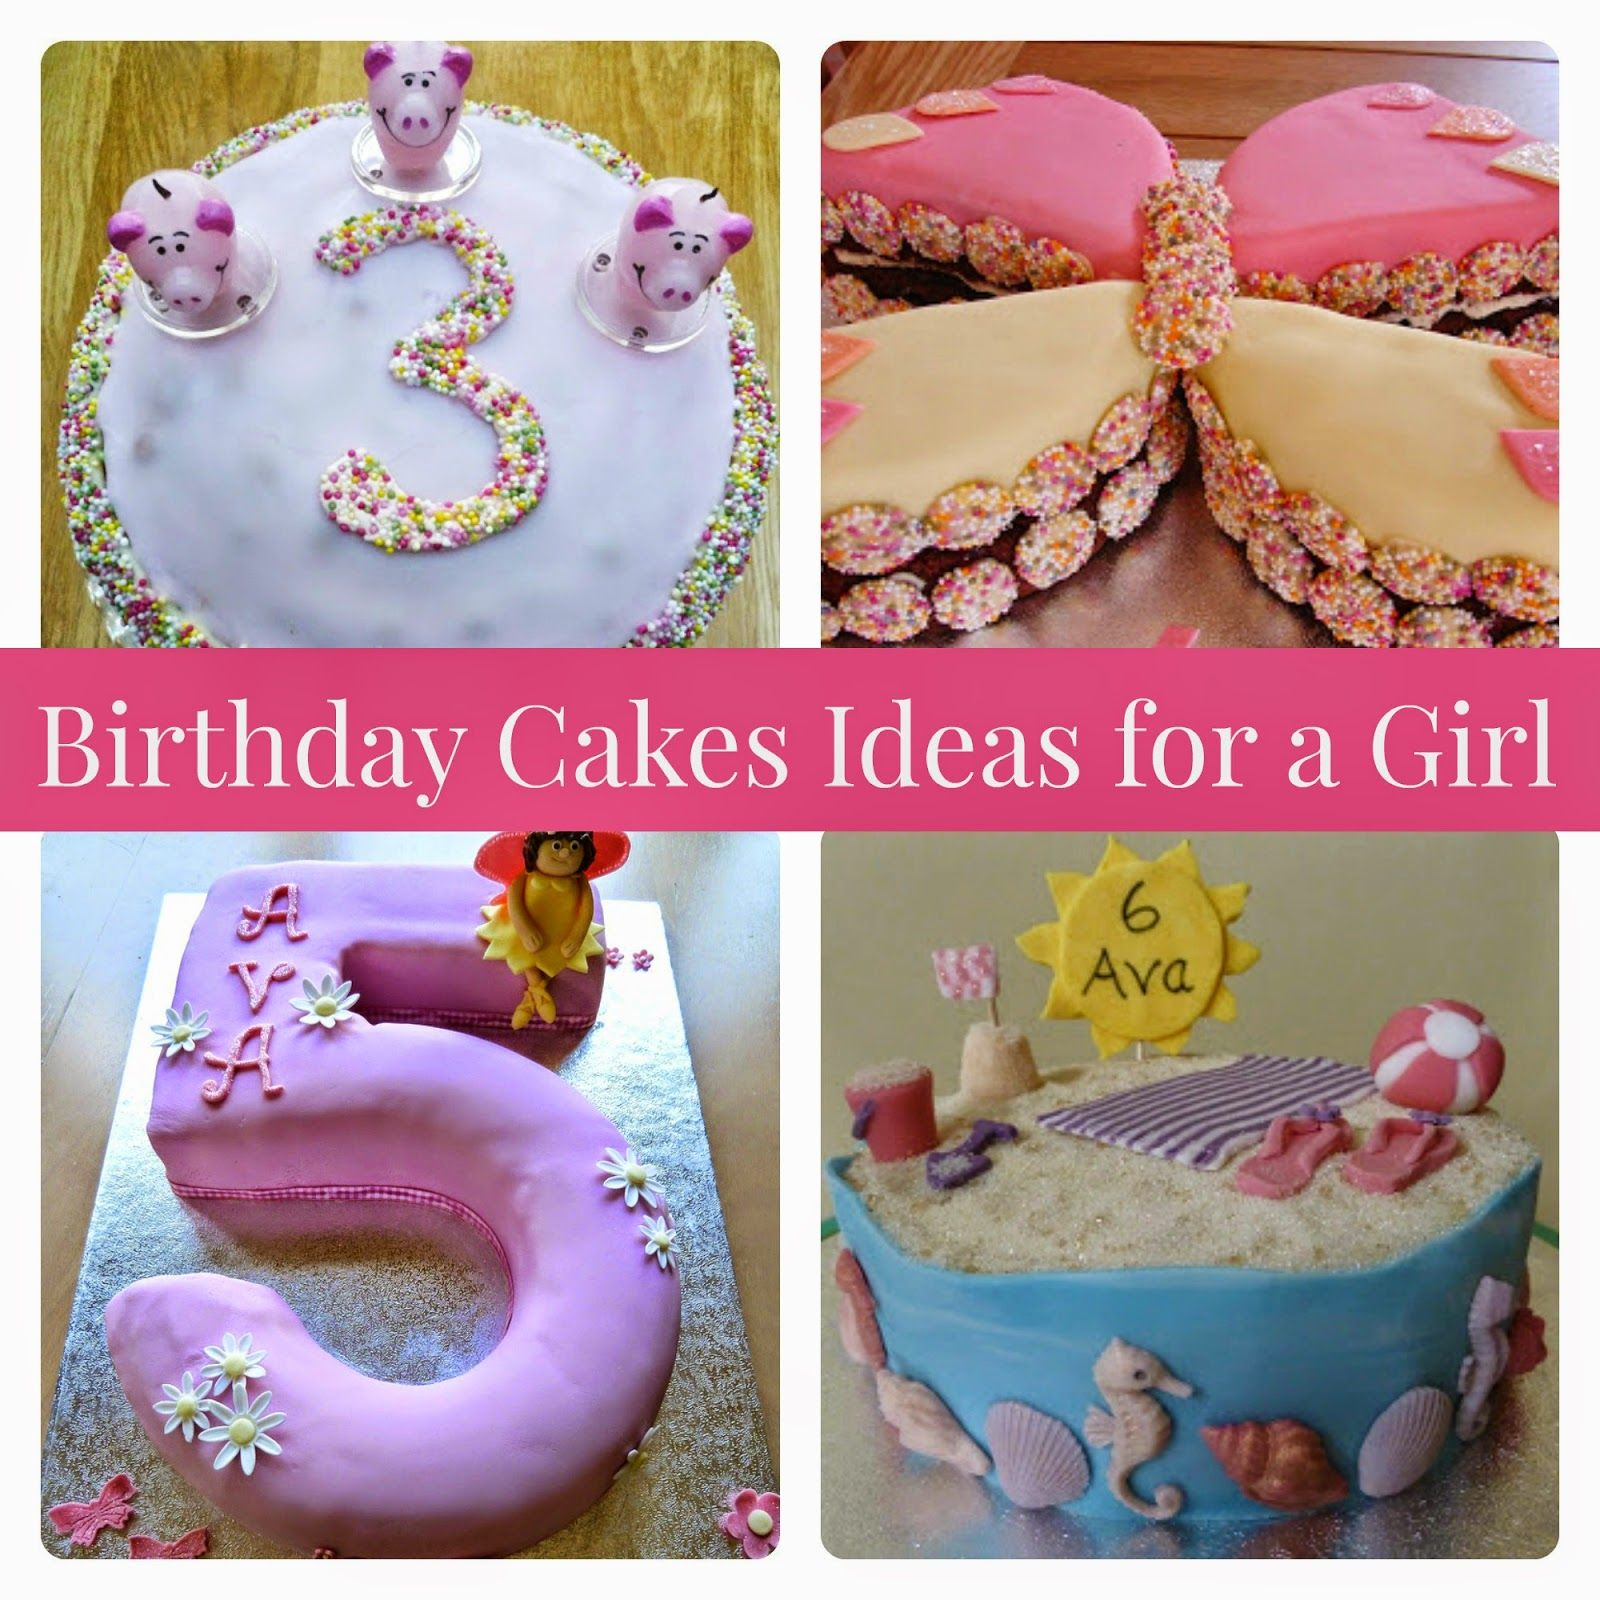 Birthday Cake Ideas Inspiration For A Girl Pig Age 5 Butterfly Seaside Beach